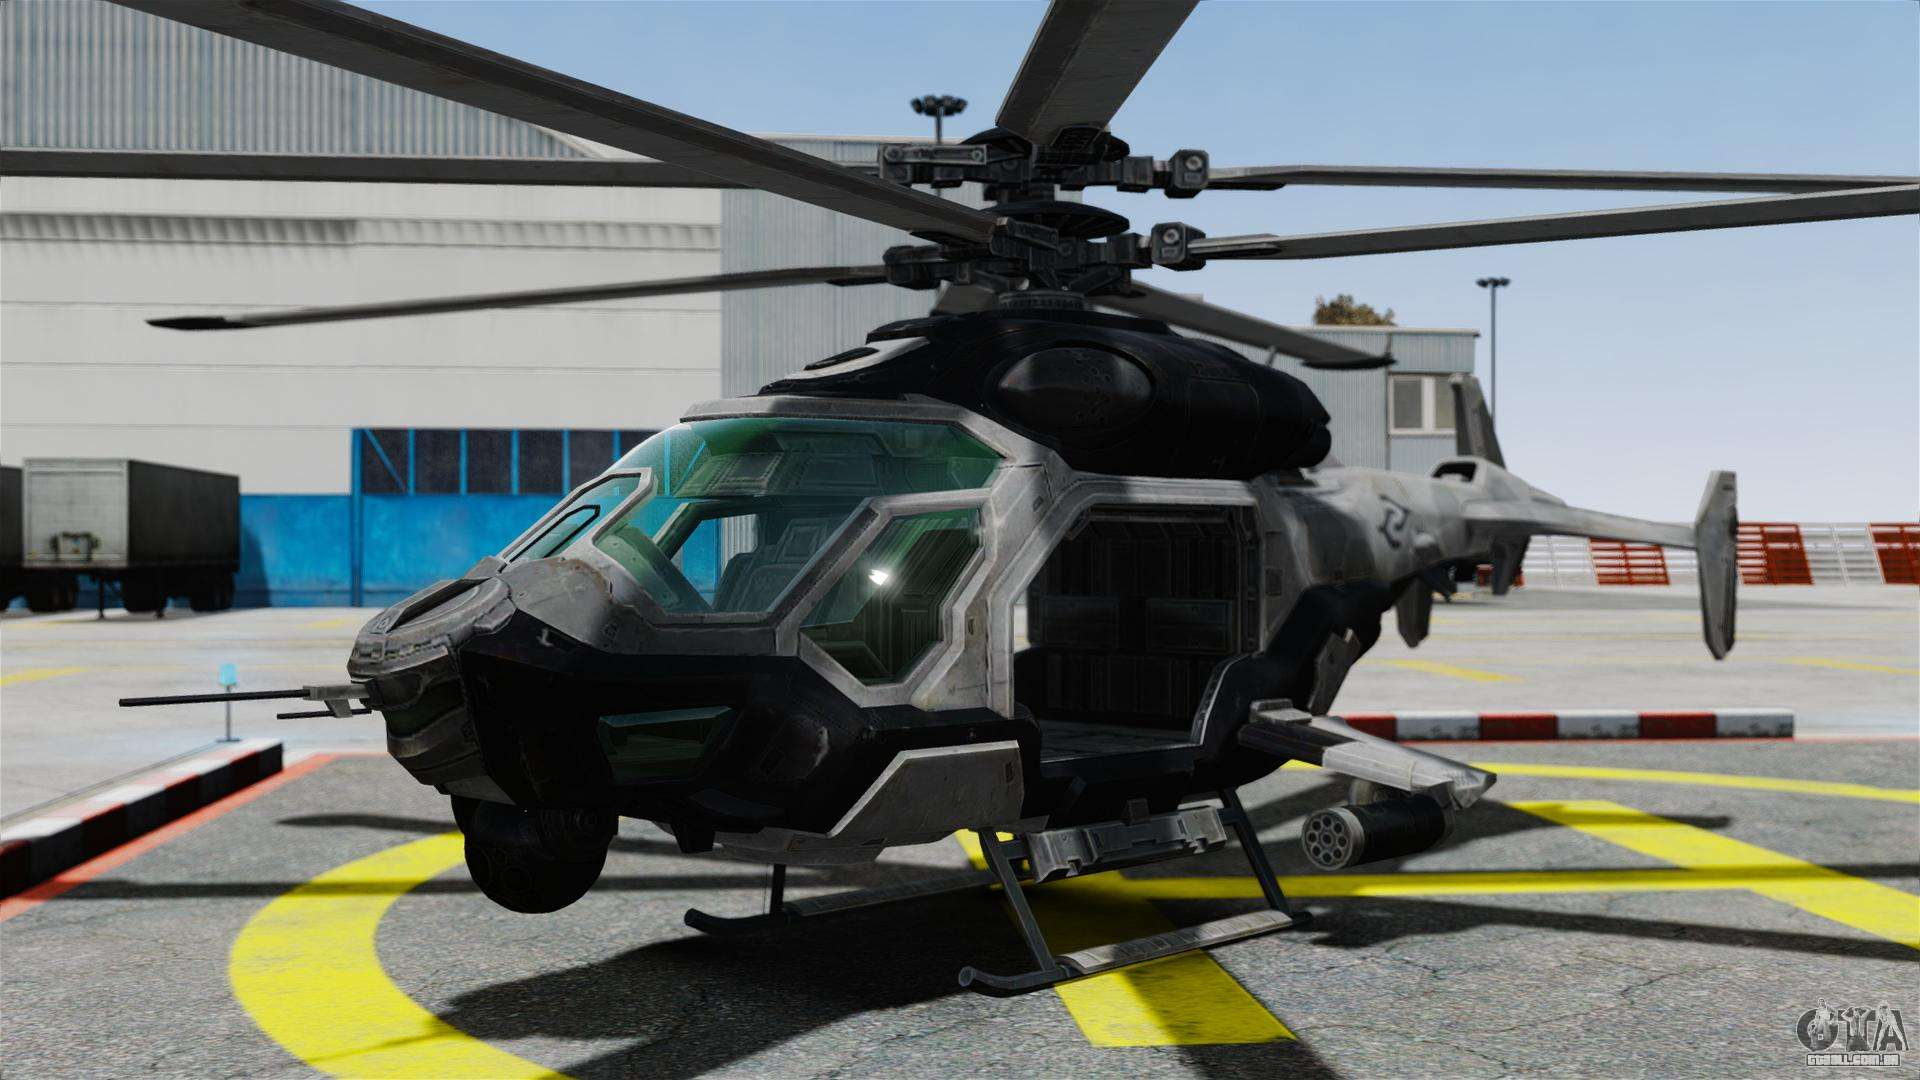 crysis helicopter with 27621 Vertolt Cell on A0 71 00 14300000868259128798002175085 moreover 2010 04 01 archive also Warface 2 in addition Fish Tank Wallpaper Hd likewise Concept Helicopter Gunship By Jon Mccoy.